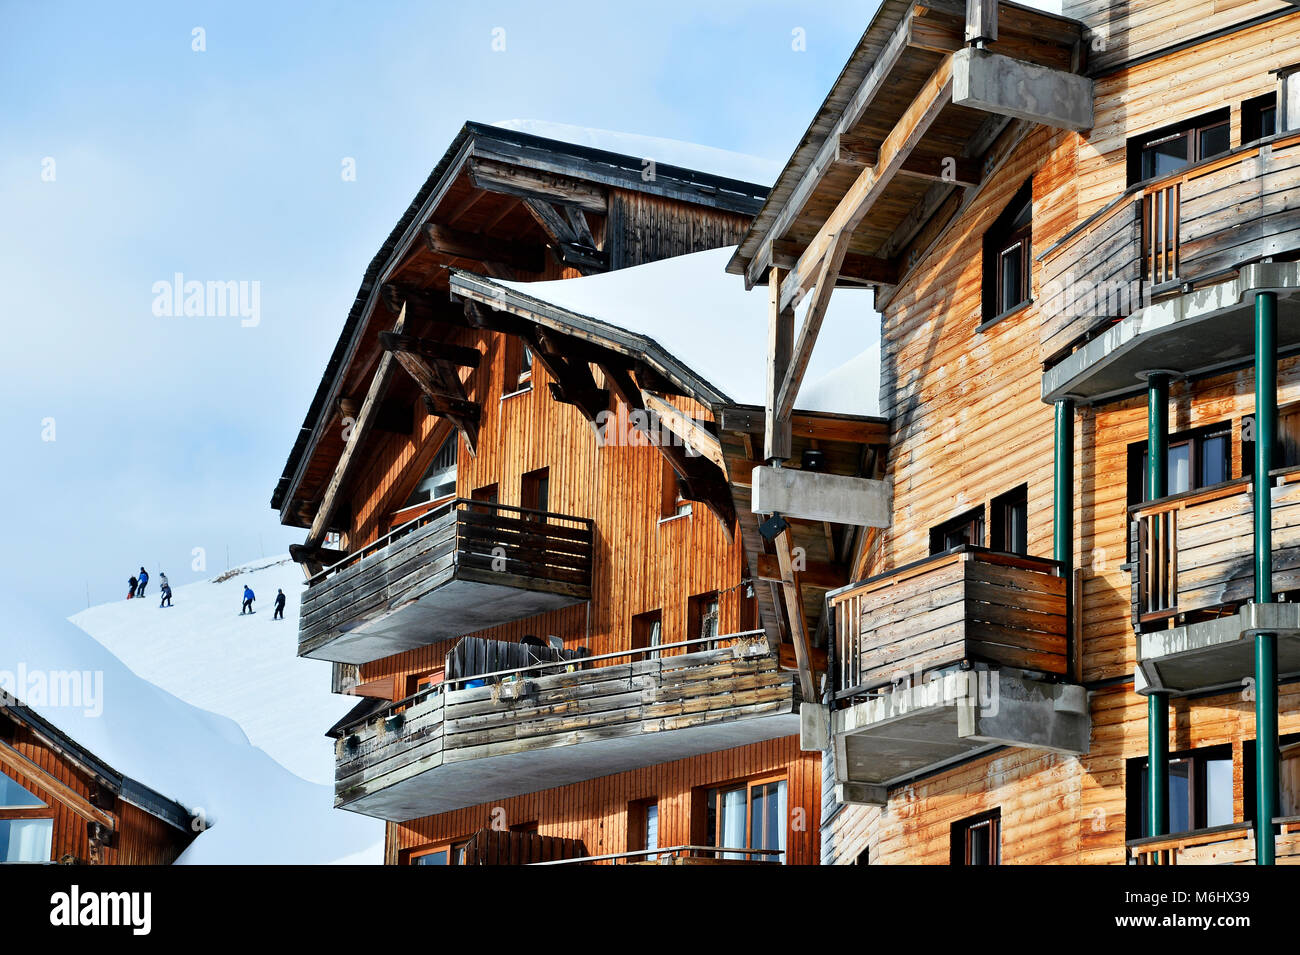 morzine avoriaz stock photos morzine avoriaz stock images alamy. Black Bedroom Furniture Sets. Home Design Ideas